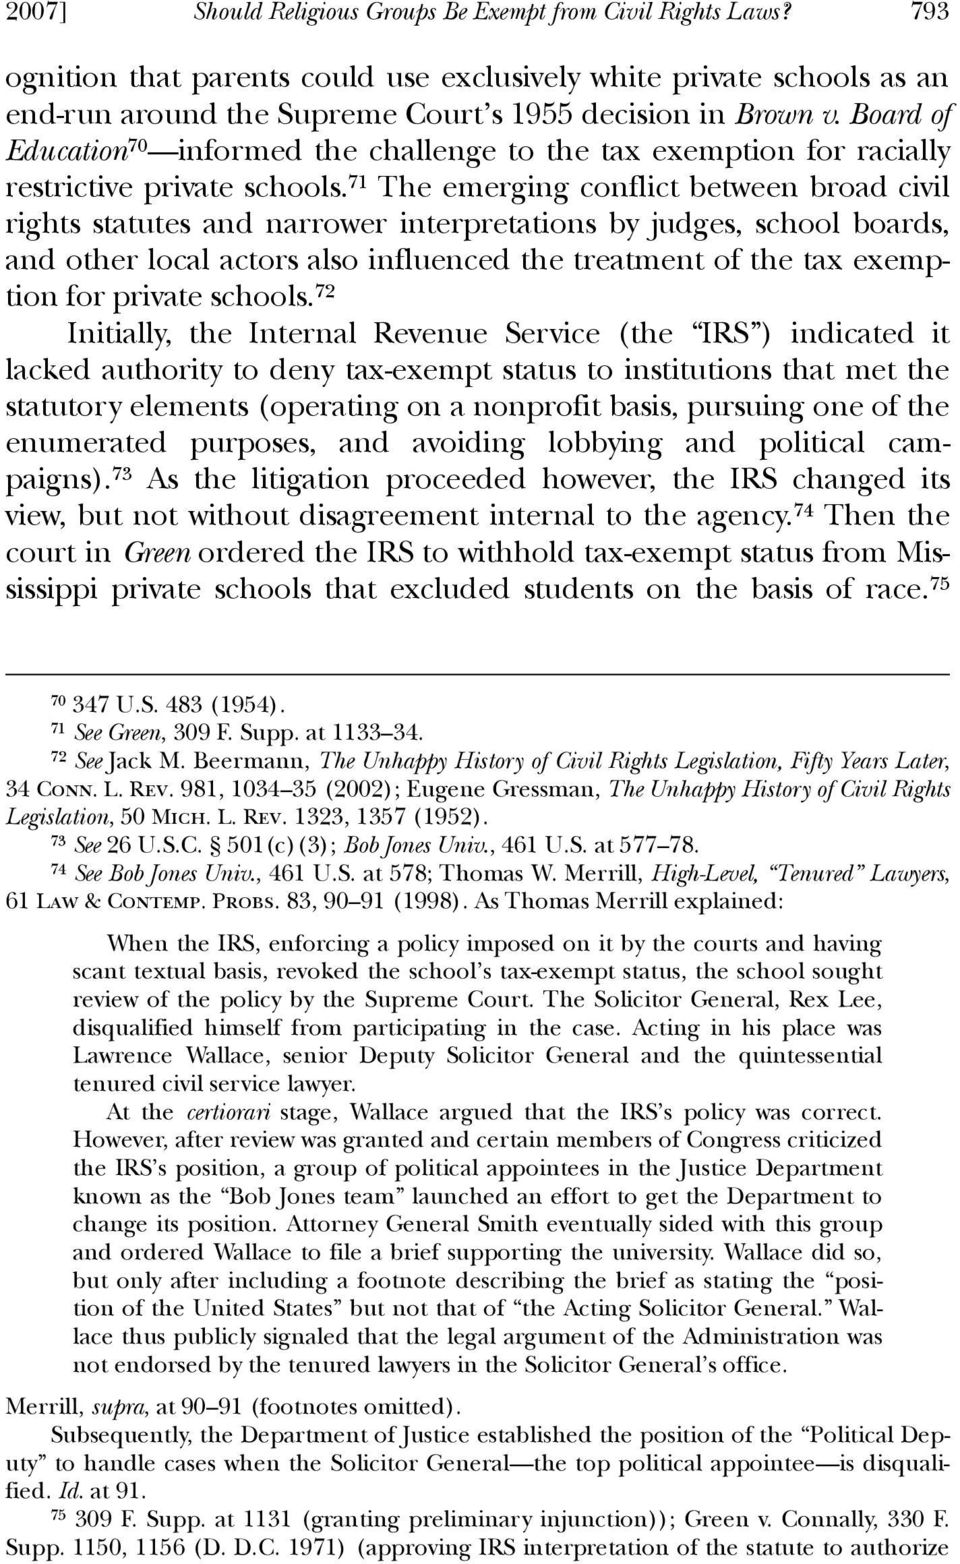 71 The emerging conflict between broad civil rights statutes and narrower interpretations by judges, school boards, and other local actors also influenced the treatment of the tax exemption for